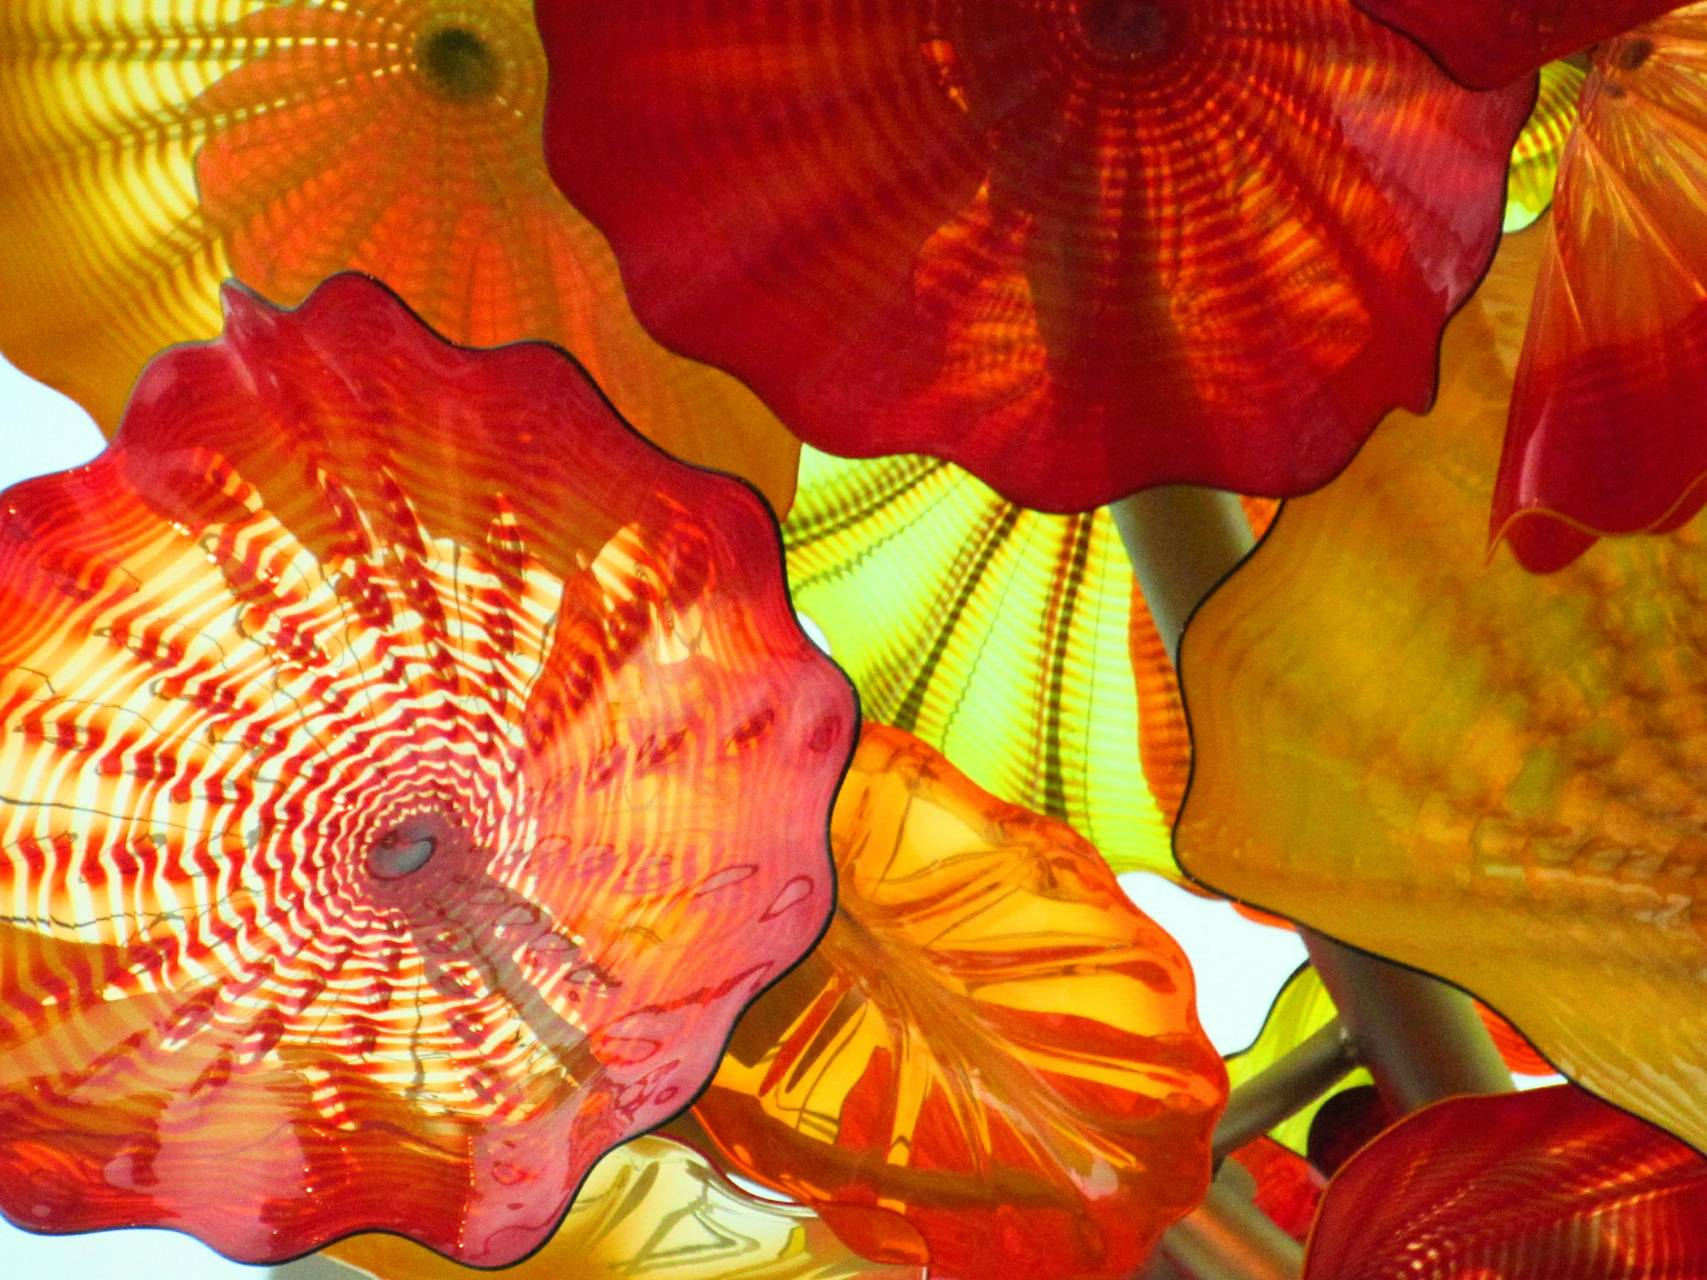 Chihuly warm colors4